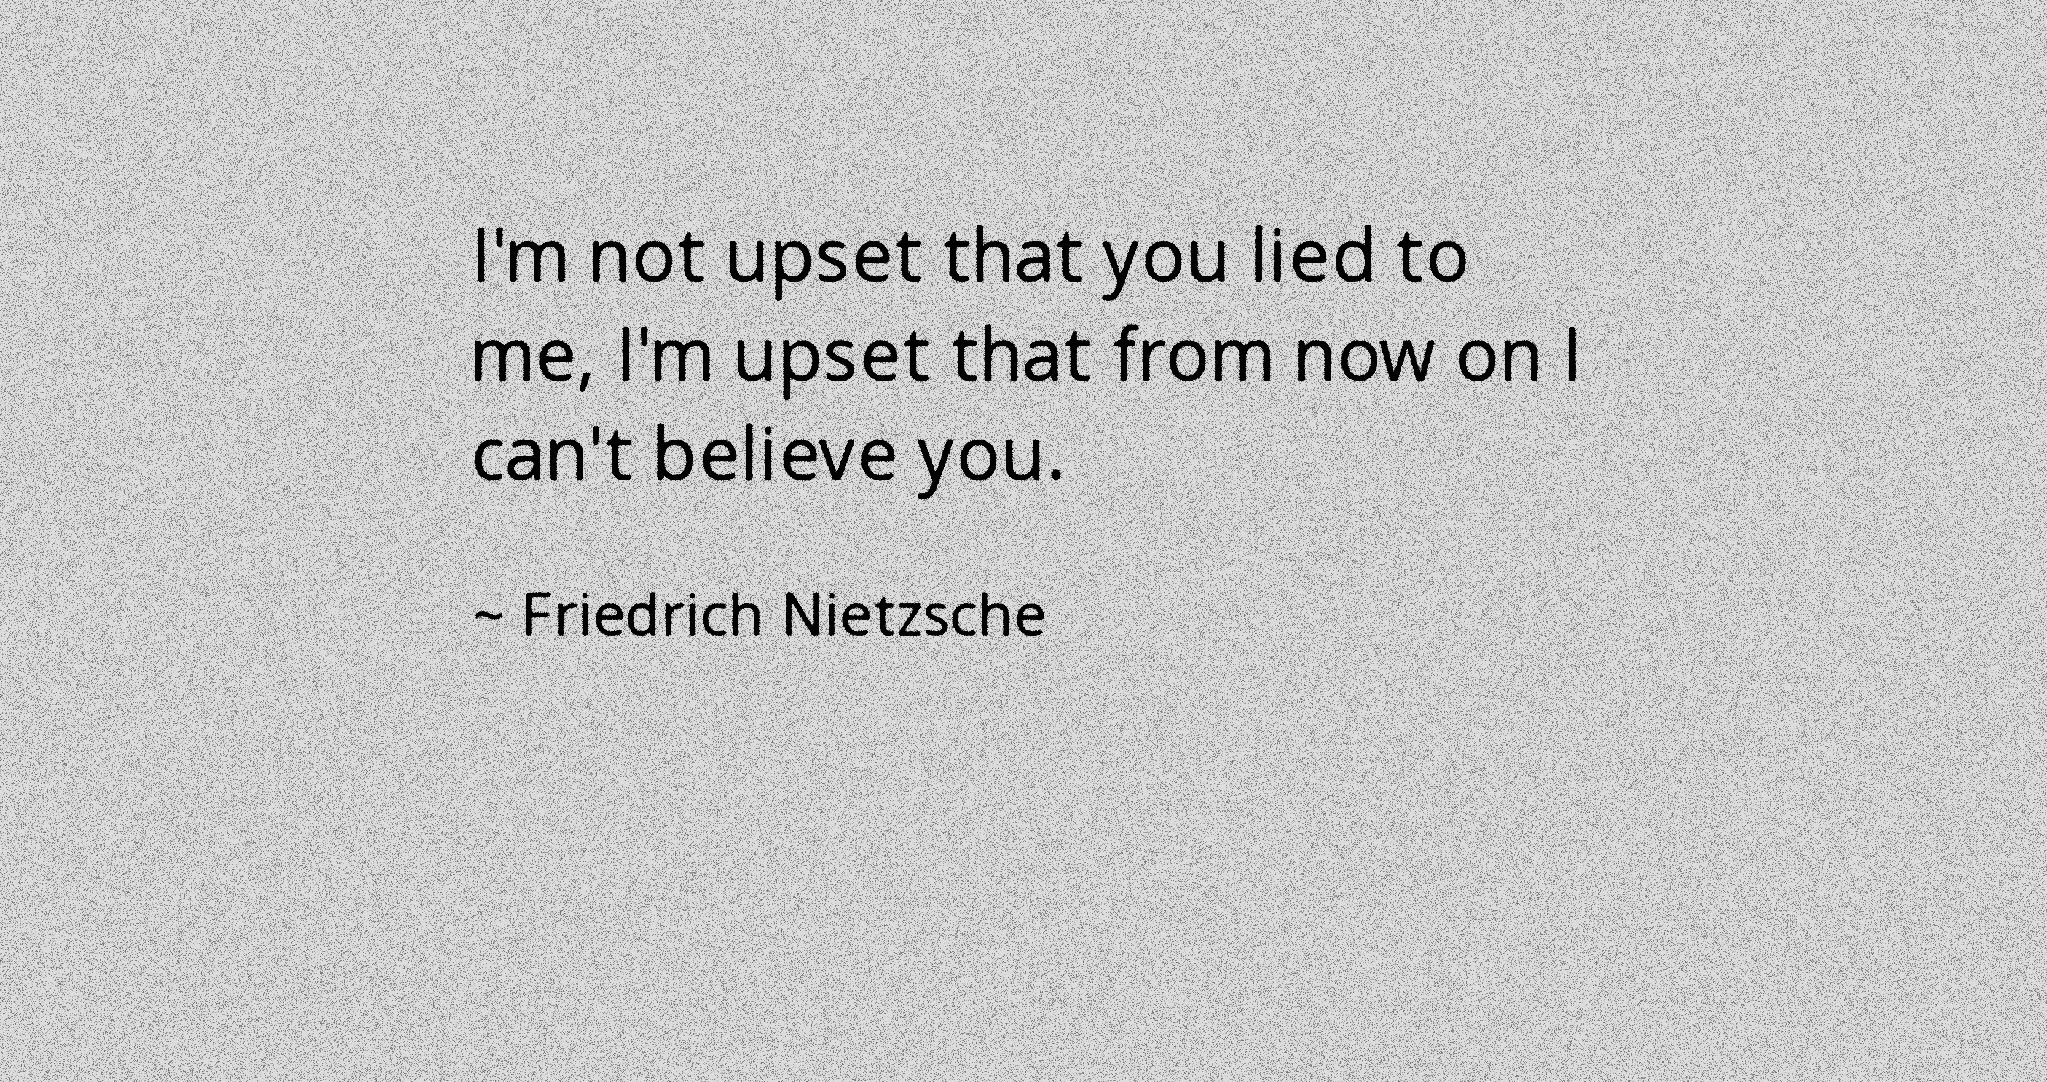 Quotes Nietzsche Inspiration 23 Of Friedrich Nietzsche's Most Famous Quotes  Artsheep